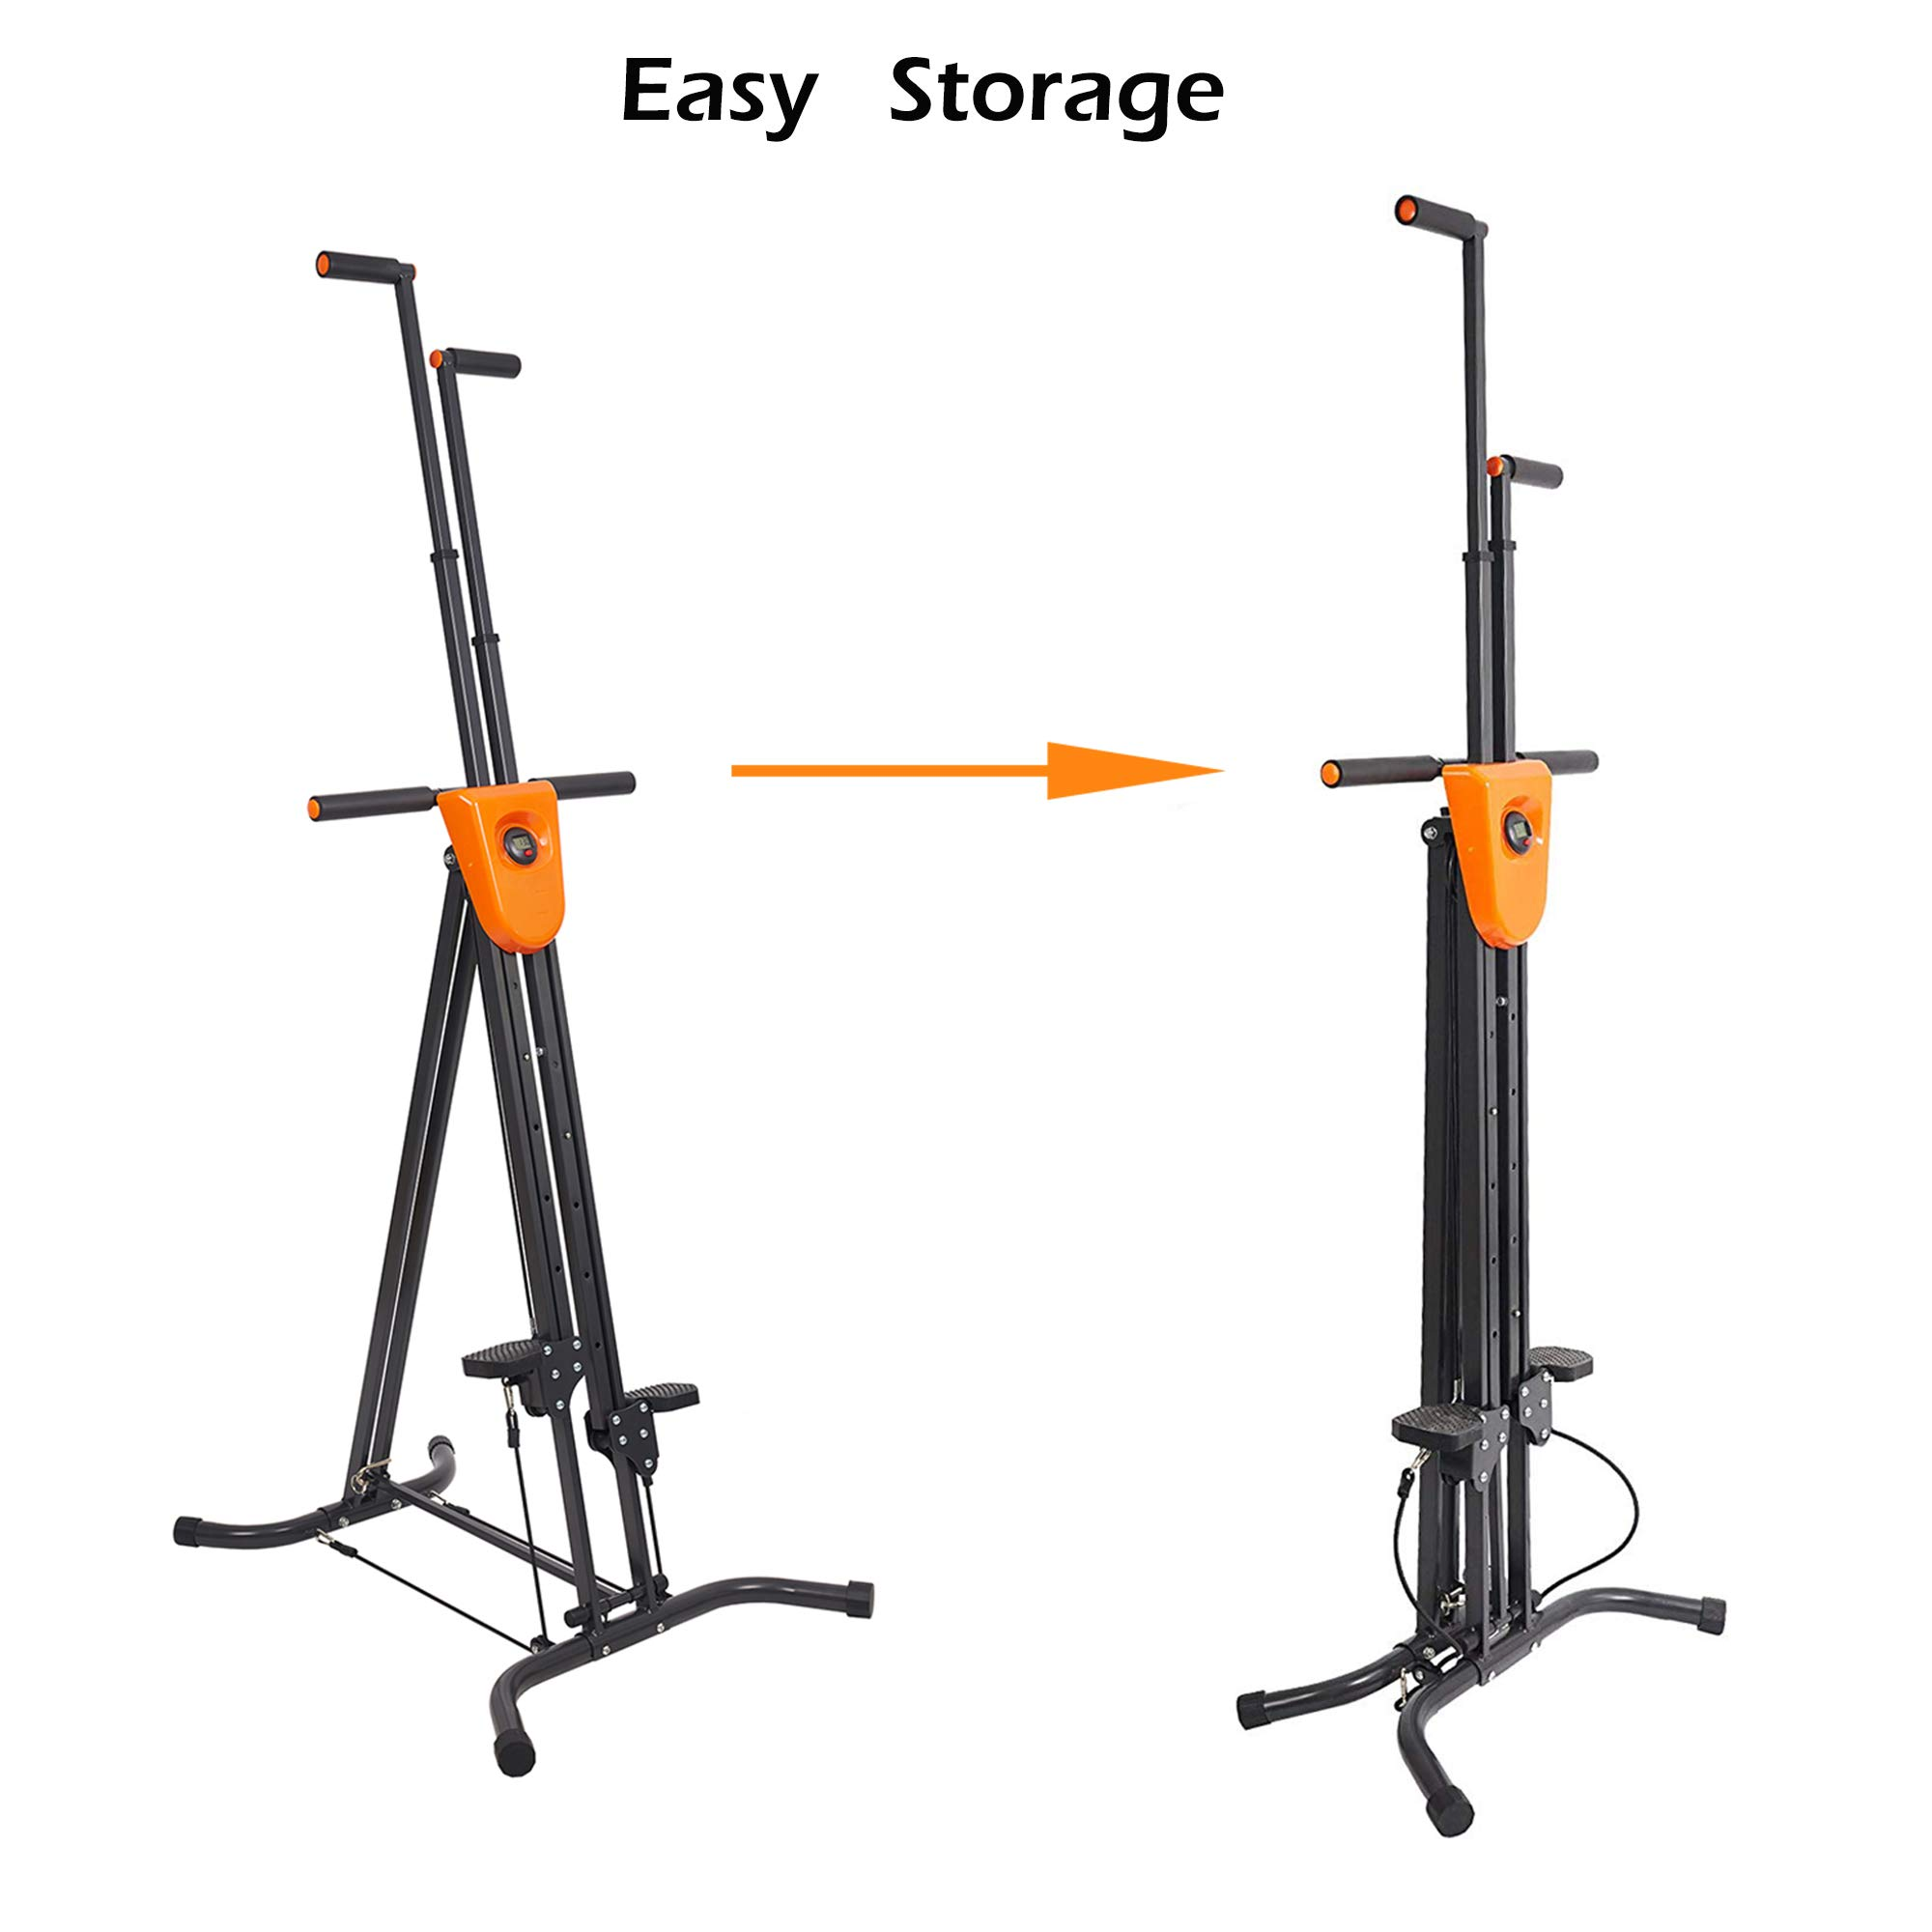 Lucky Tree Stair Climber Exercise Machine Vertical Climber Stairs Gym Home Fitness Folding Stair Stepper Adjustable Height for Women Man Full Total Body Workout by Lucky Tree (Image #5)